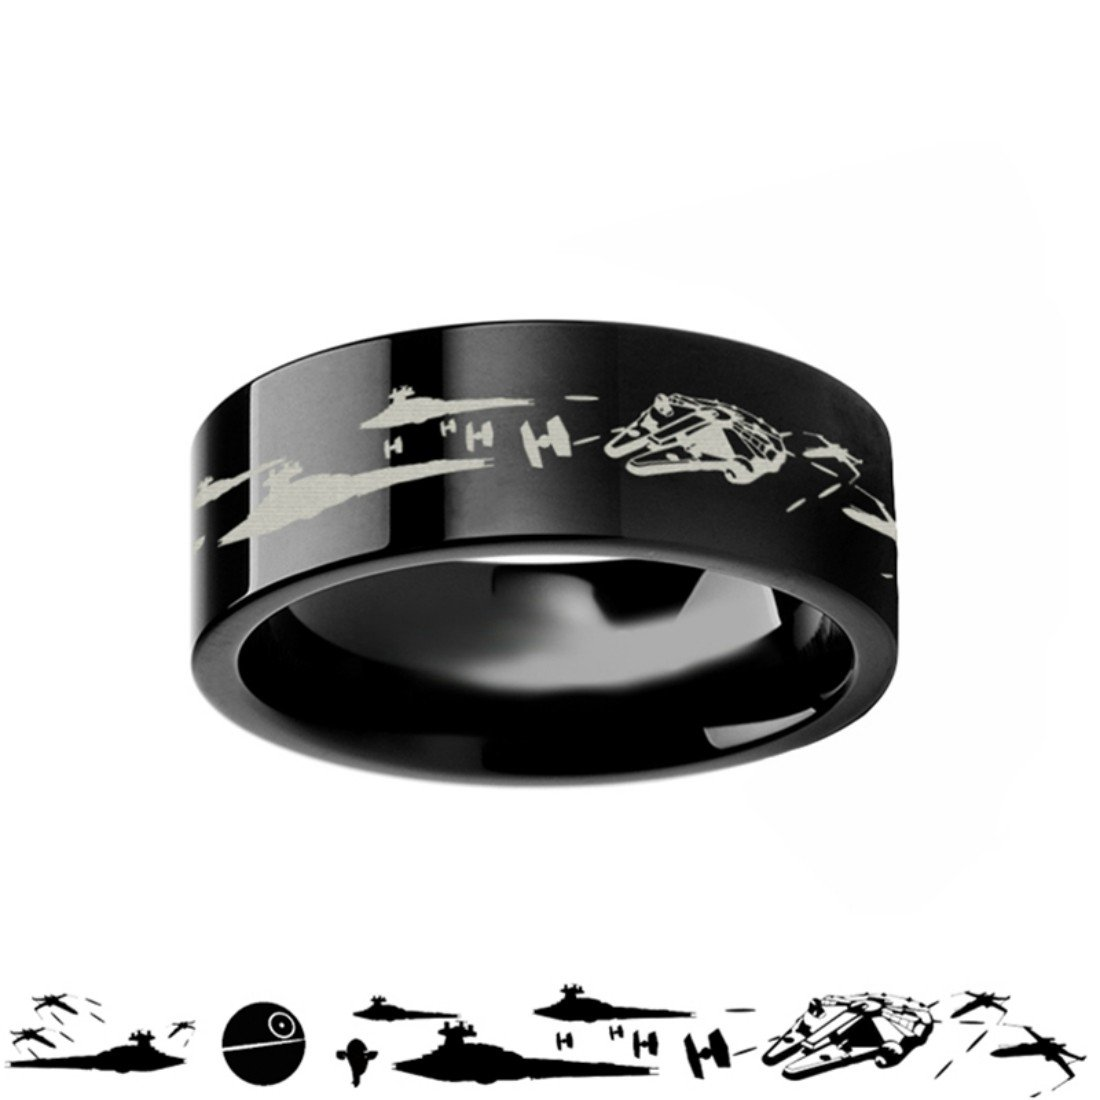 Star Wars A New Hope Death Star Space Battle Black Tungsten Ring Episode IV - 8mm Wide Band with Free Custom Engraving Personalized from Thorsten by Roy Rose Jewelry